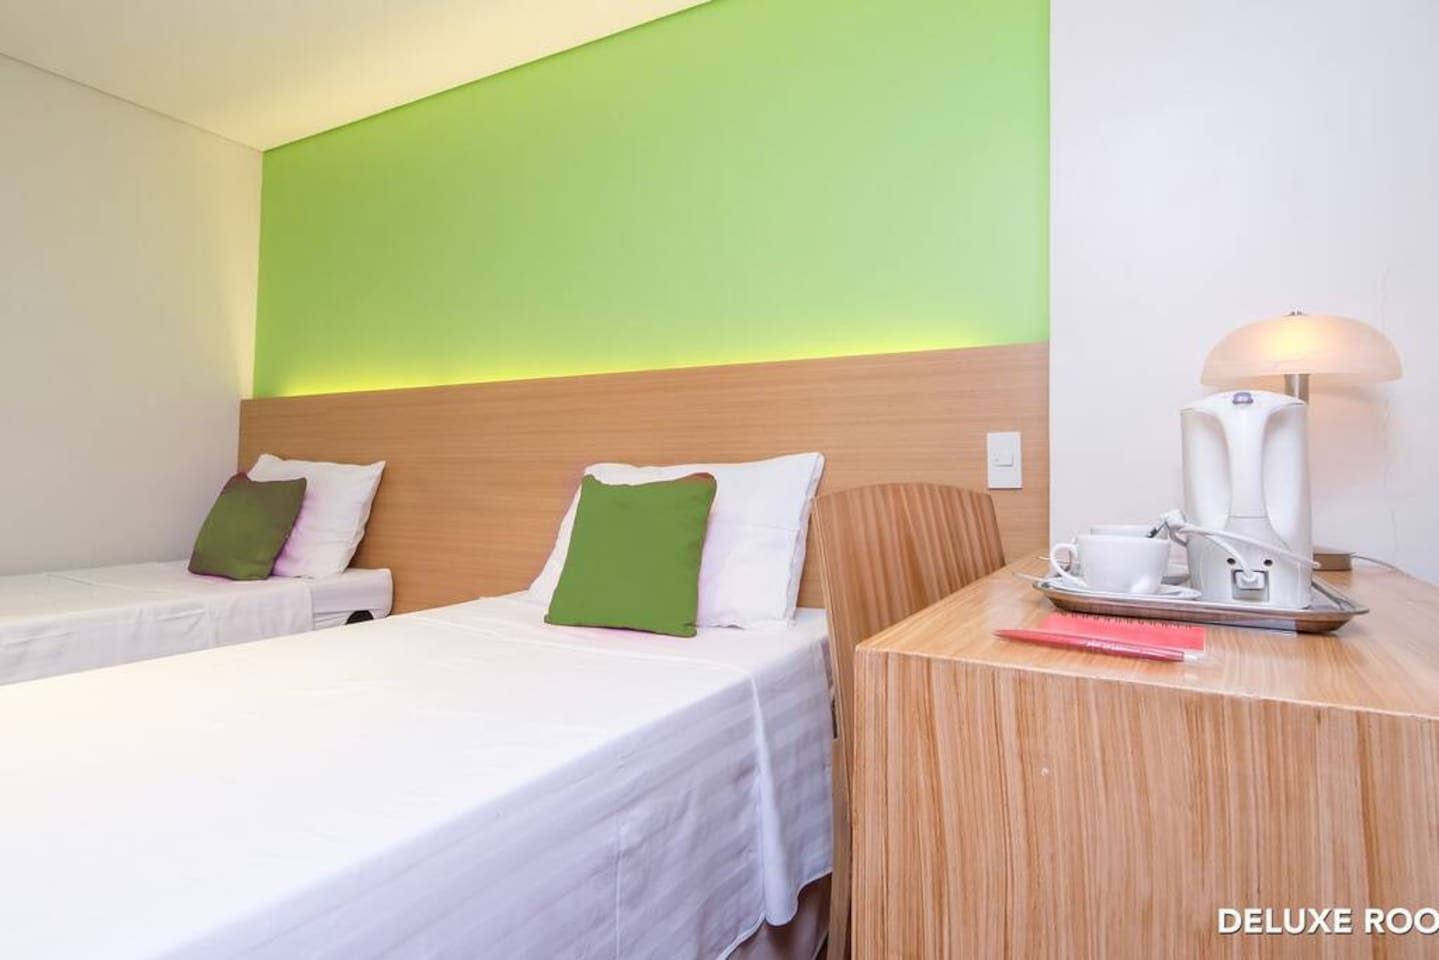 Interior of DeLuxe Twin bedroom at MySpace Hotel @BGC with electric kettle, lamp shade and desk.